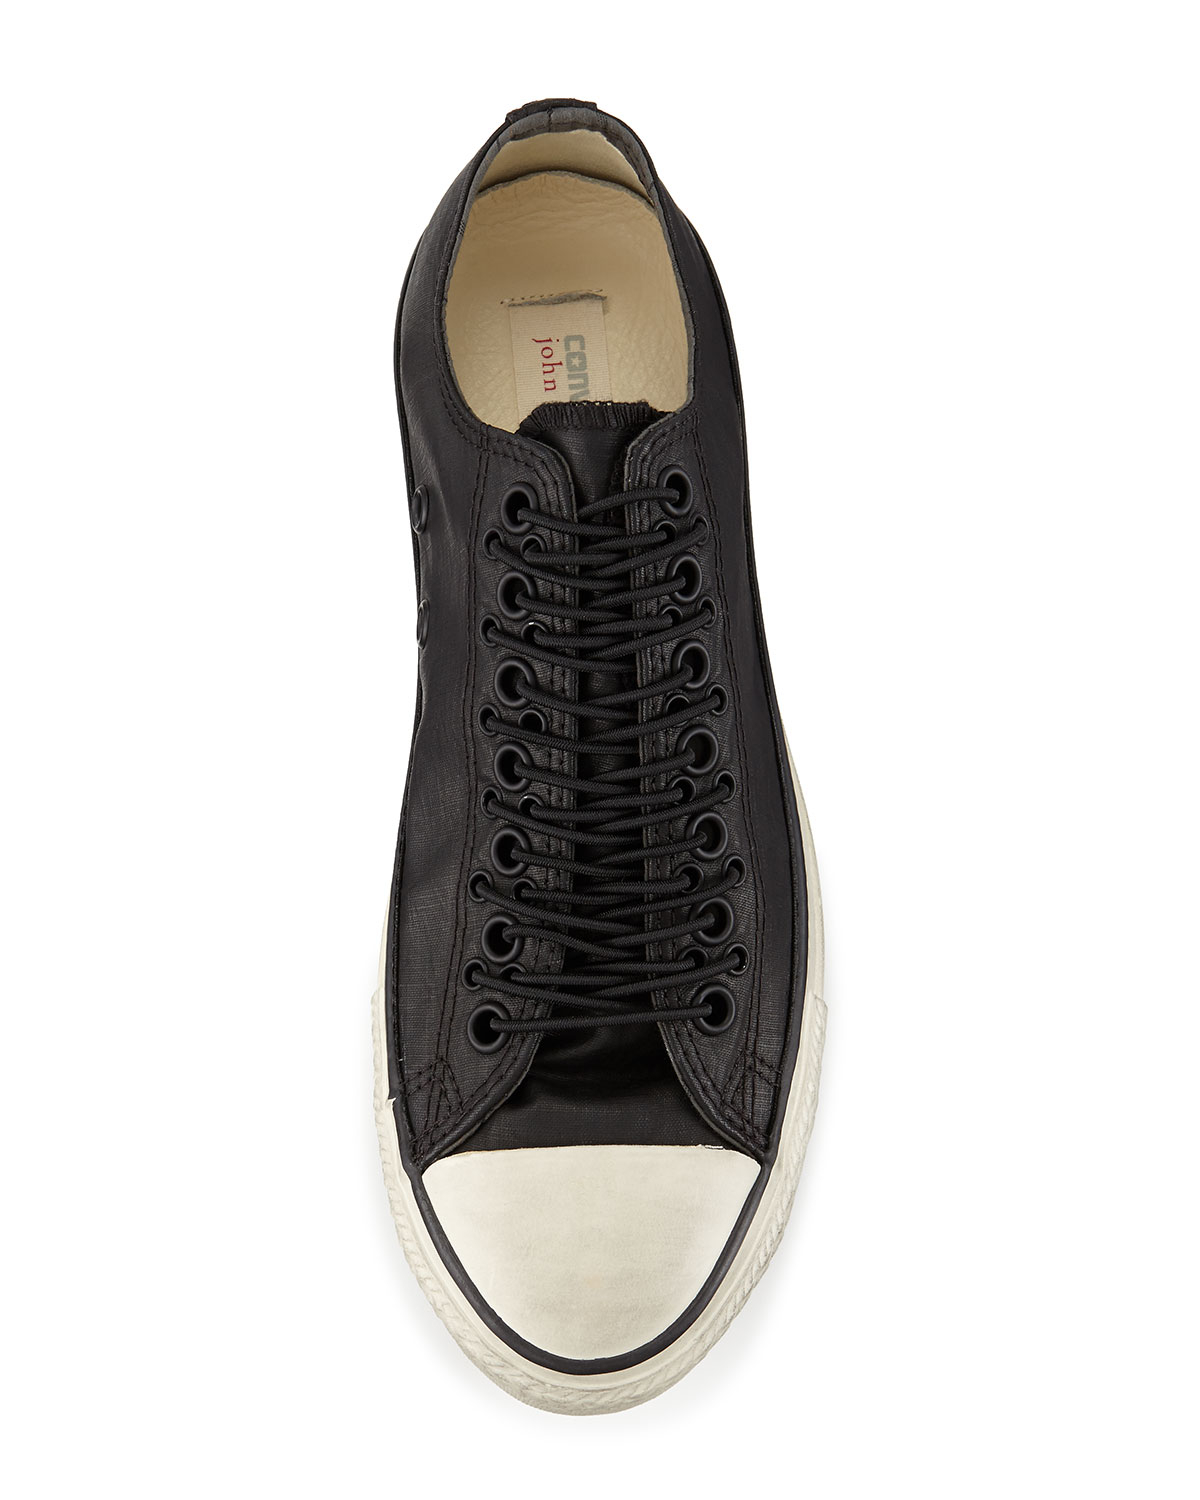 8801b602e5a9 Gallery. Previously sold at  Neiman Marcus · Men s John Varvatos Converse  ...